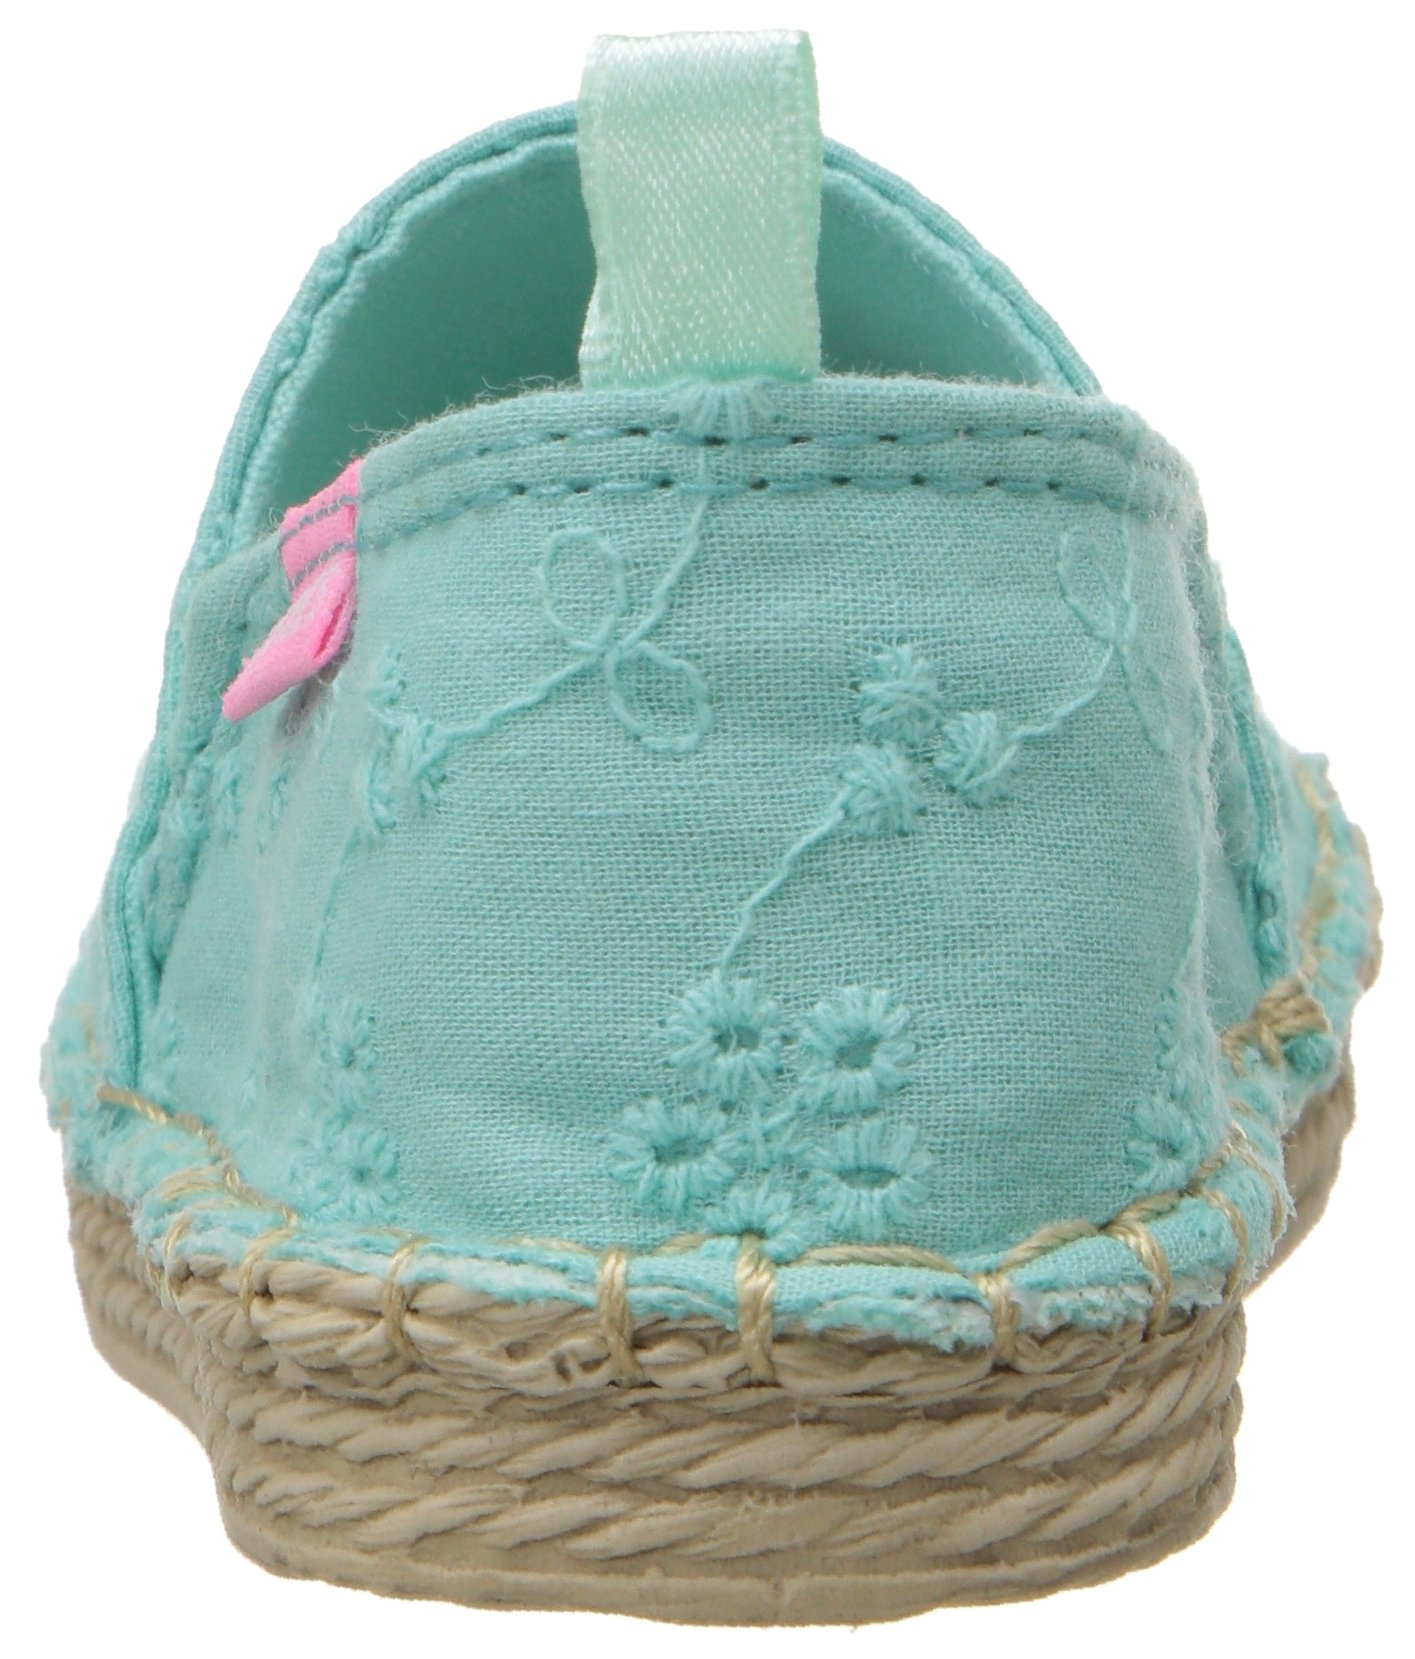 Carter's Astrid Girl's Espadrille Slip-On, Turquoise, 10 M US Toddler by Carter's (Image #2)